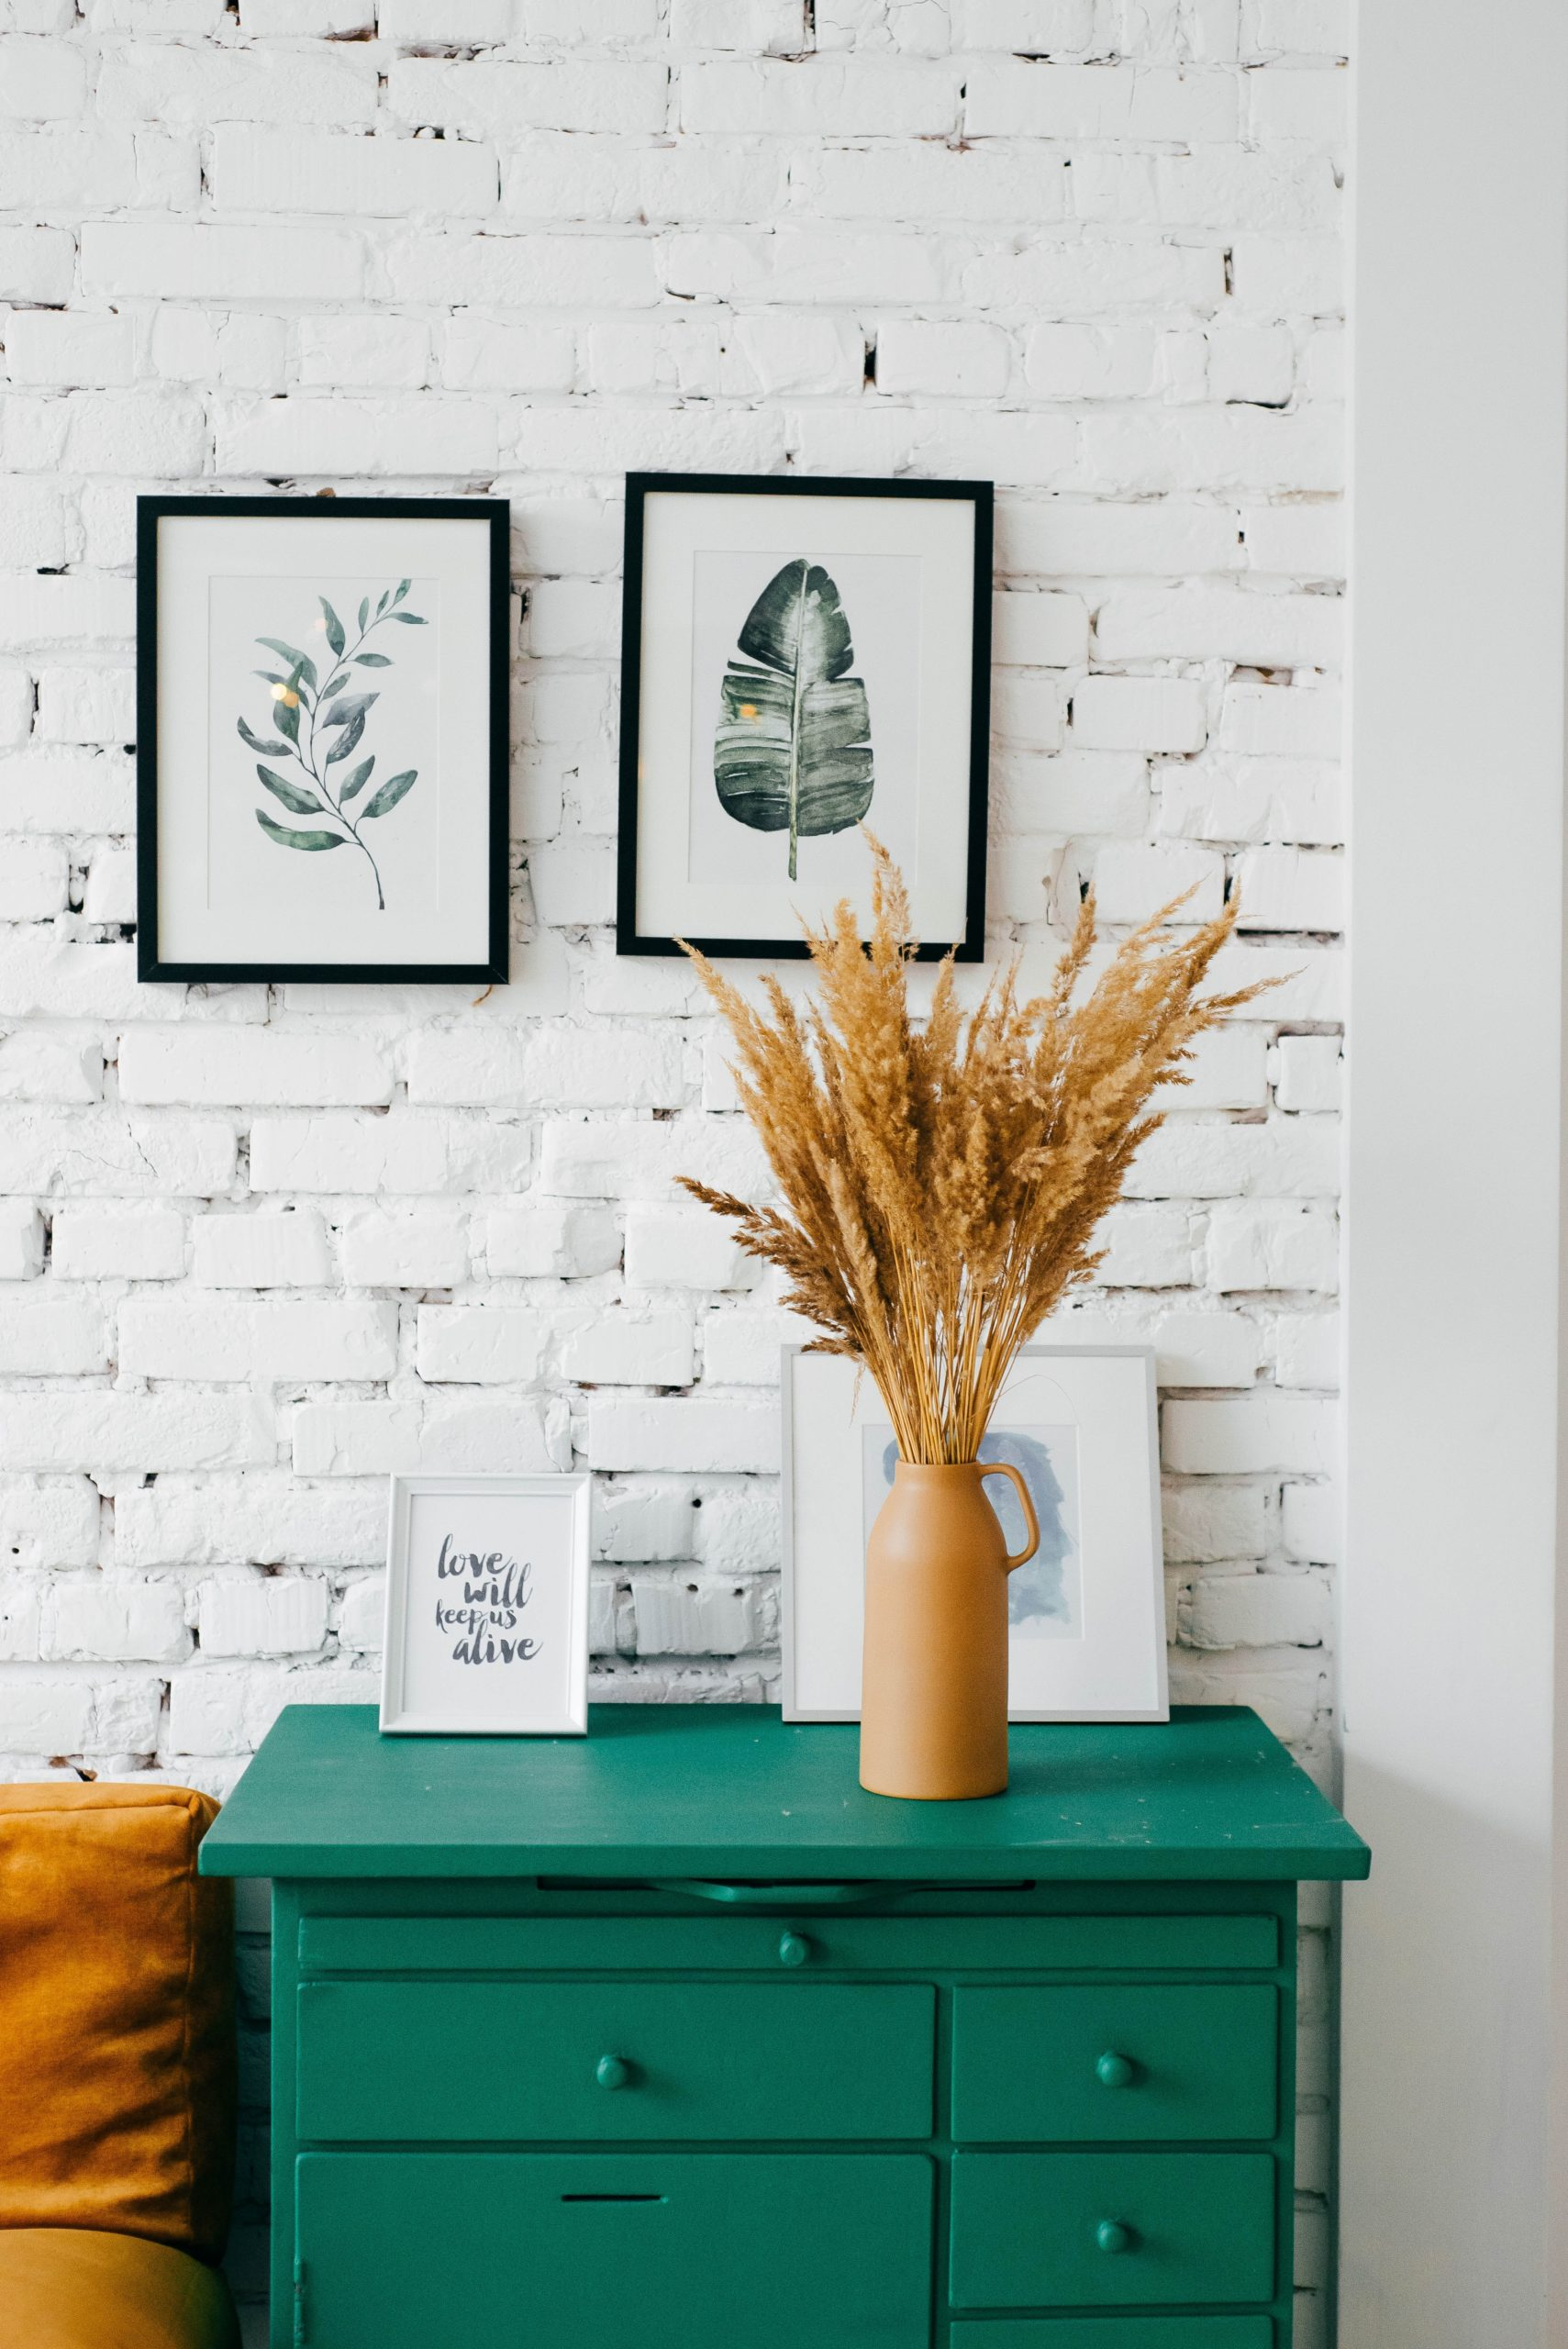 Top 50 Products To Make Your Home Look More Beautiful